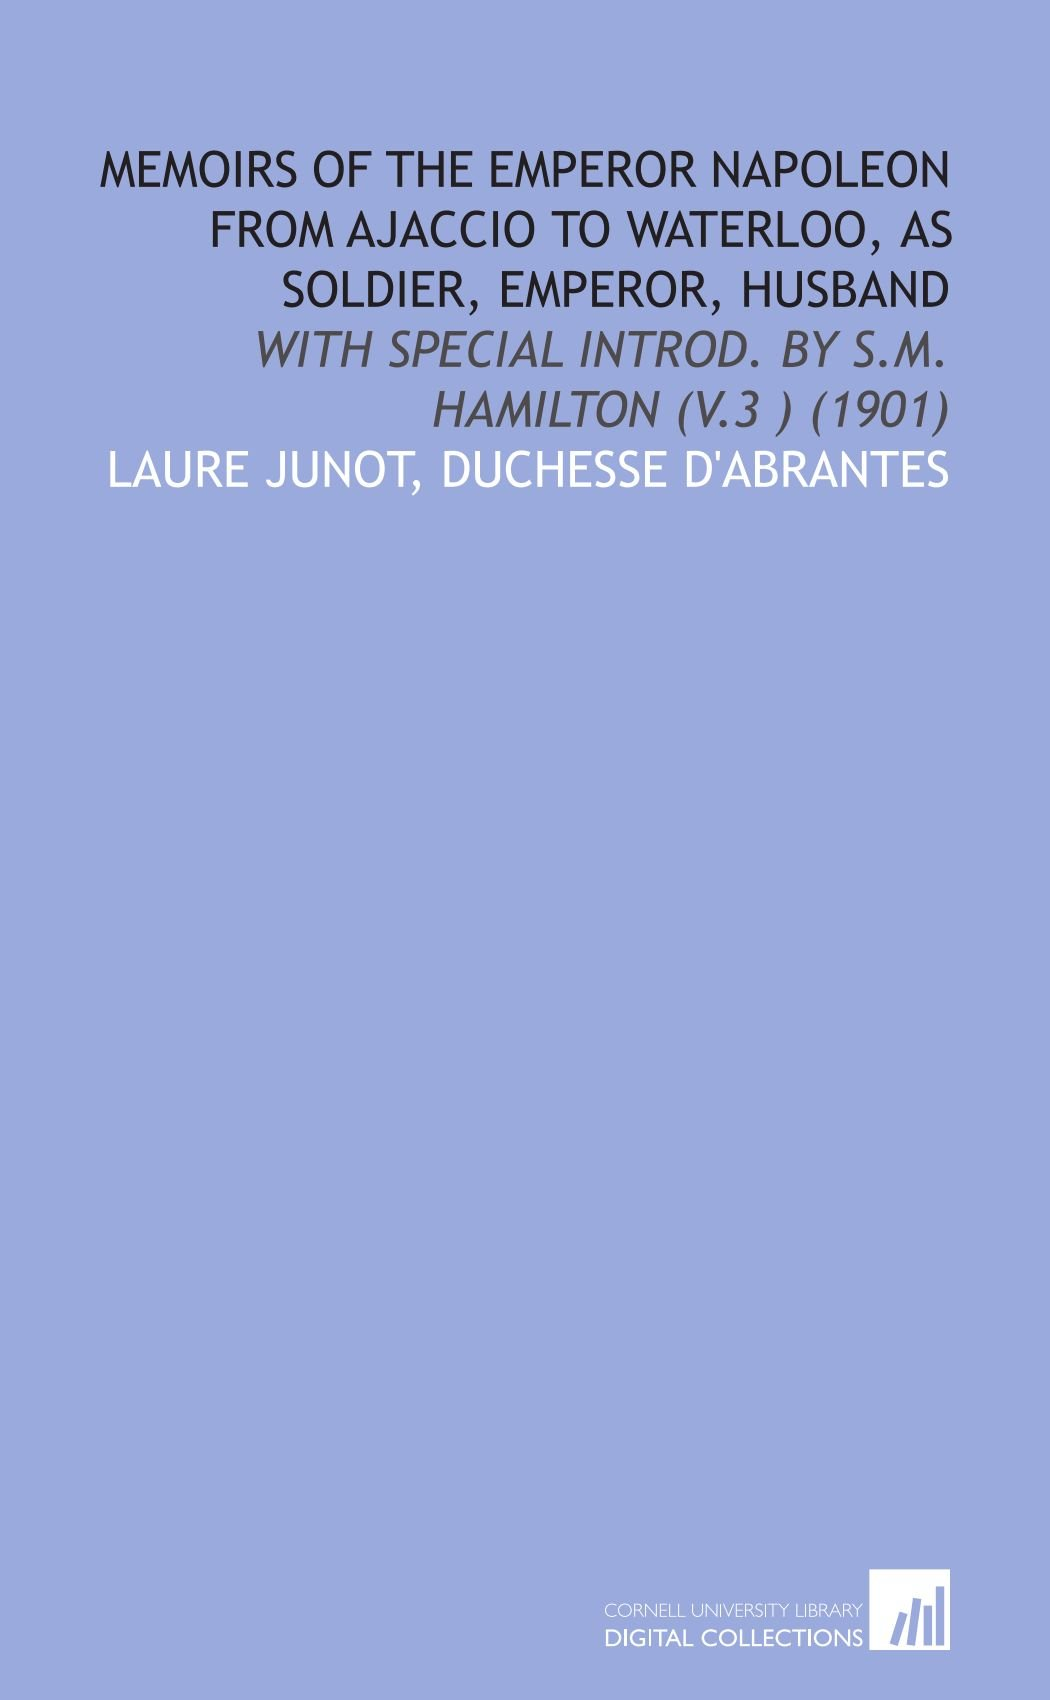 Download Memoirs of the Emperor Napoleon from Ajaccio to Waterloo, as soldier, emperor, husband: With special introd. by S.M. Hamilton (v.3 ) (1901) PDF